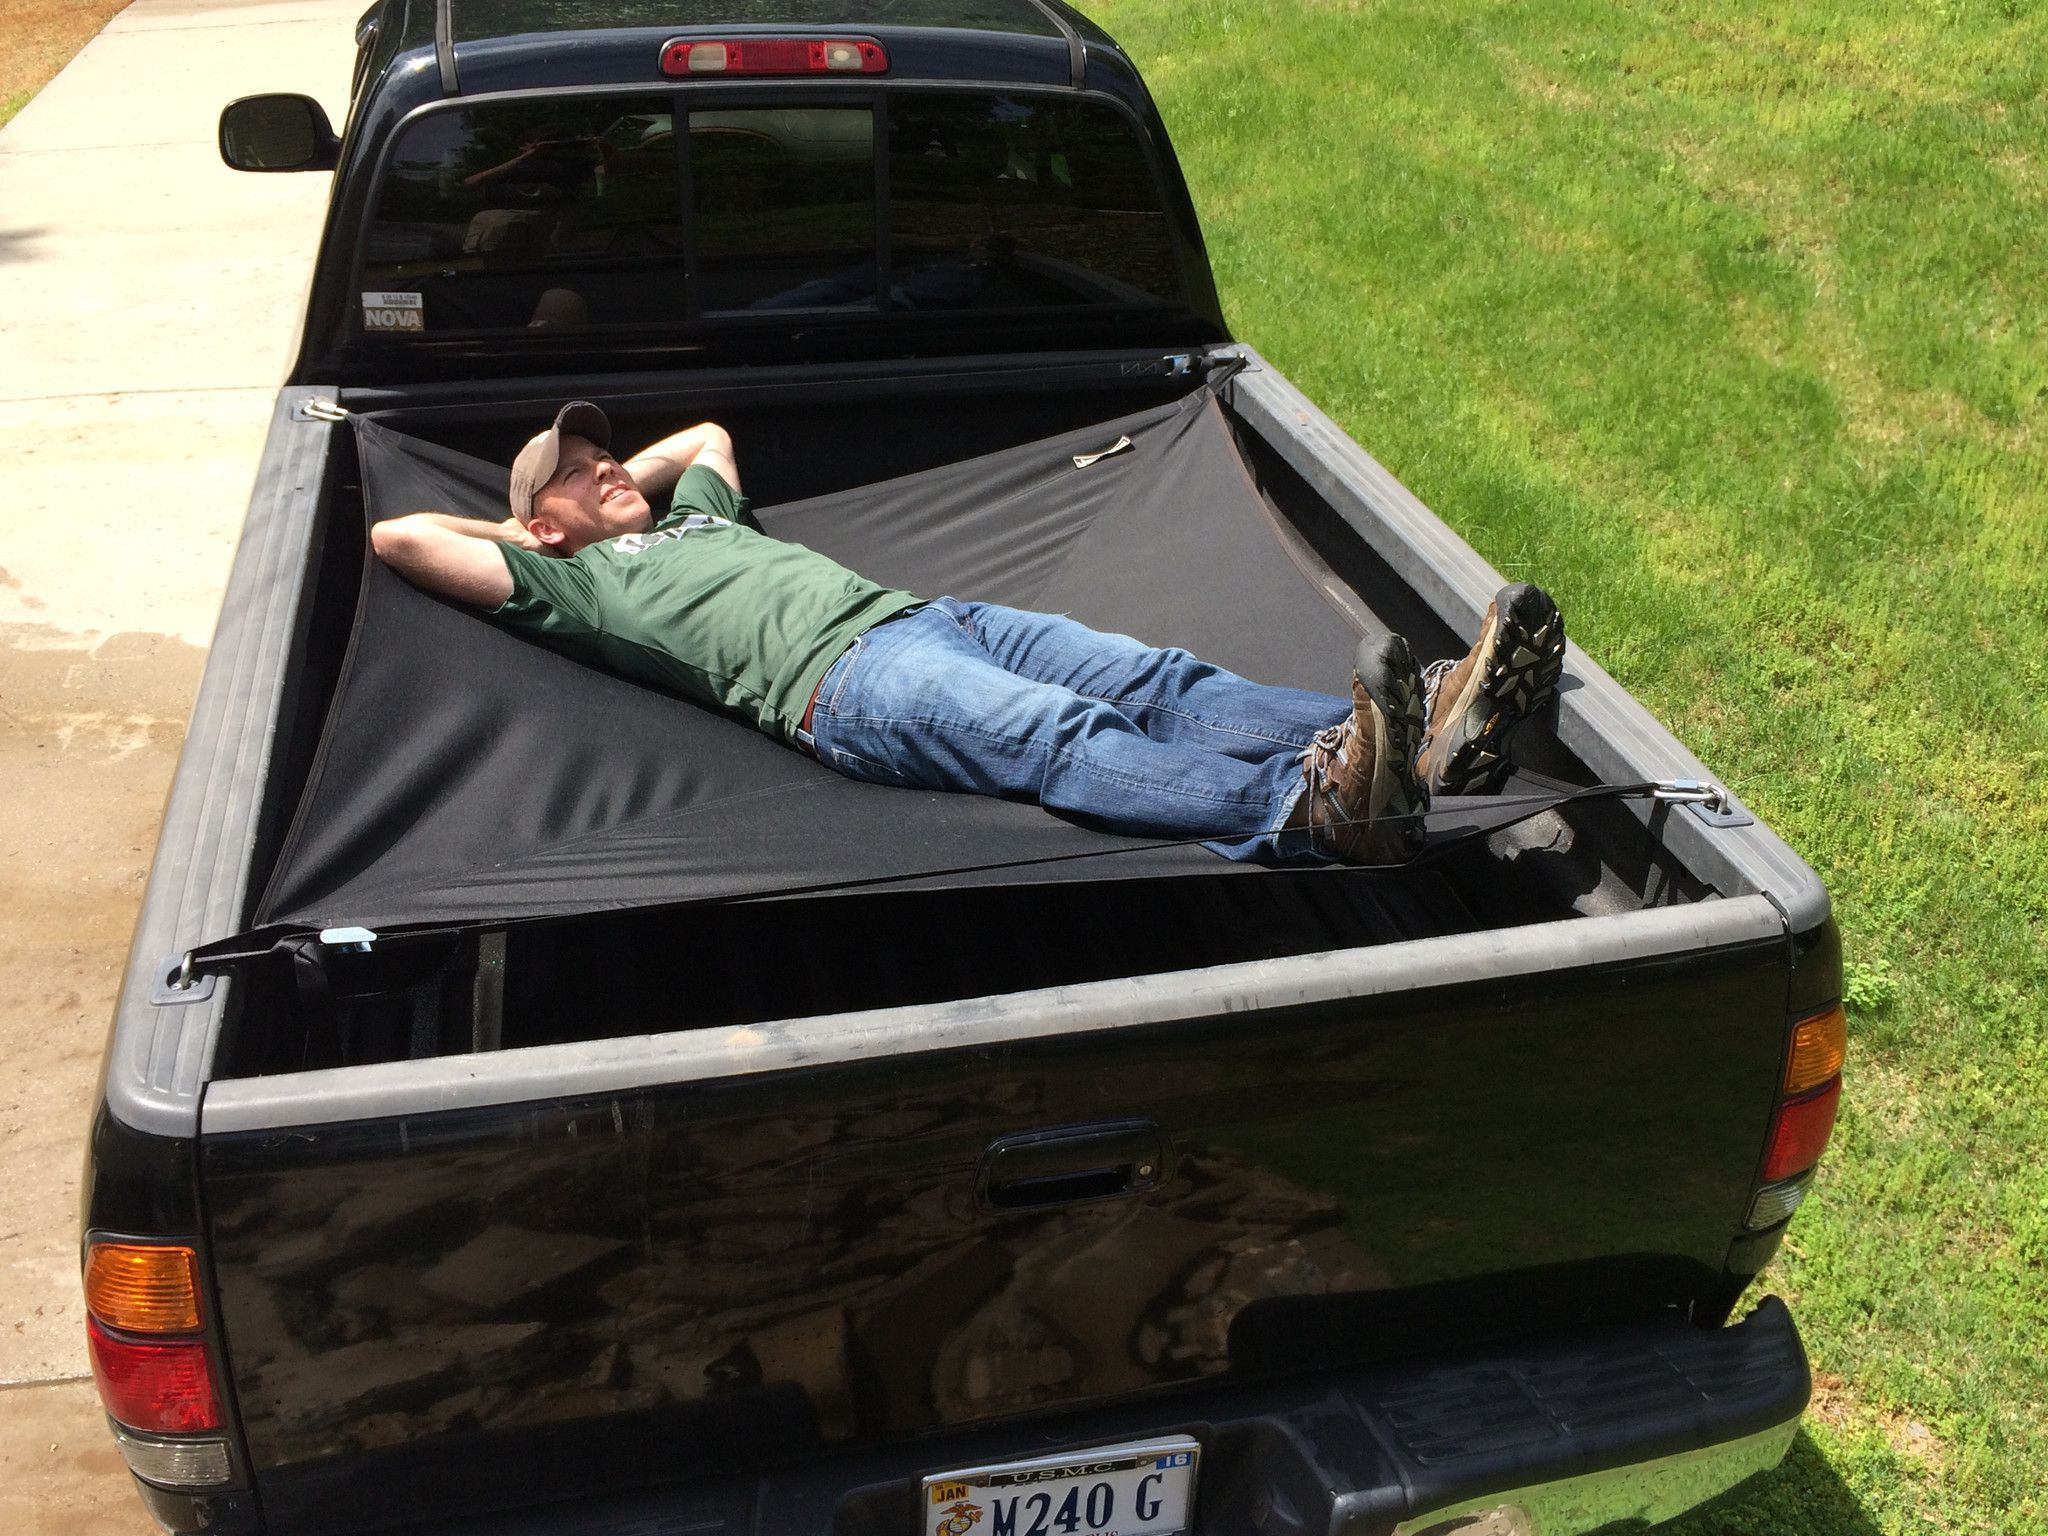 Jammocktruck Truck Accessories Truck Camping Truck Bed Camping